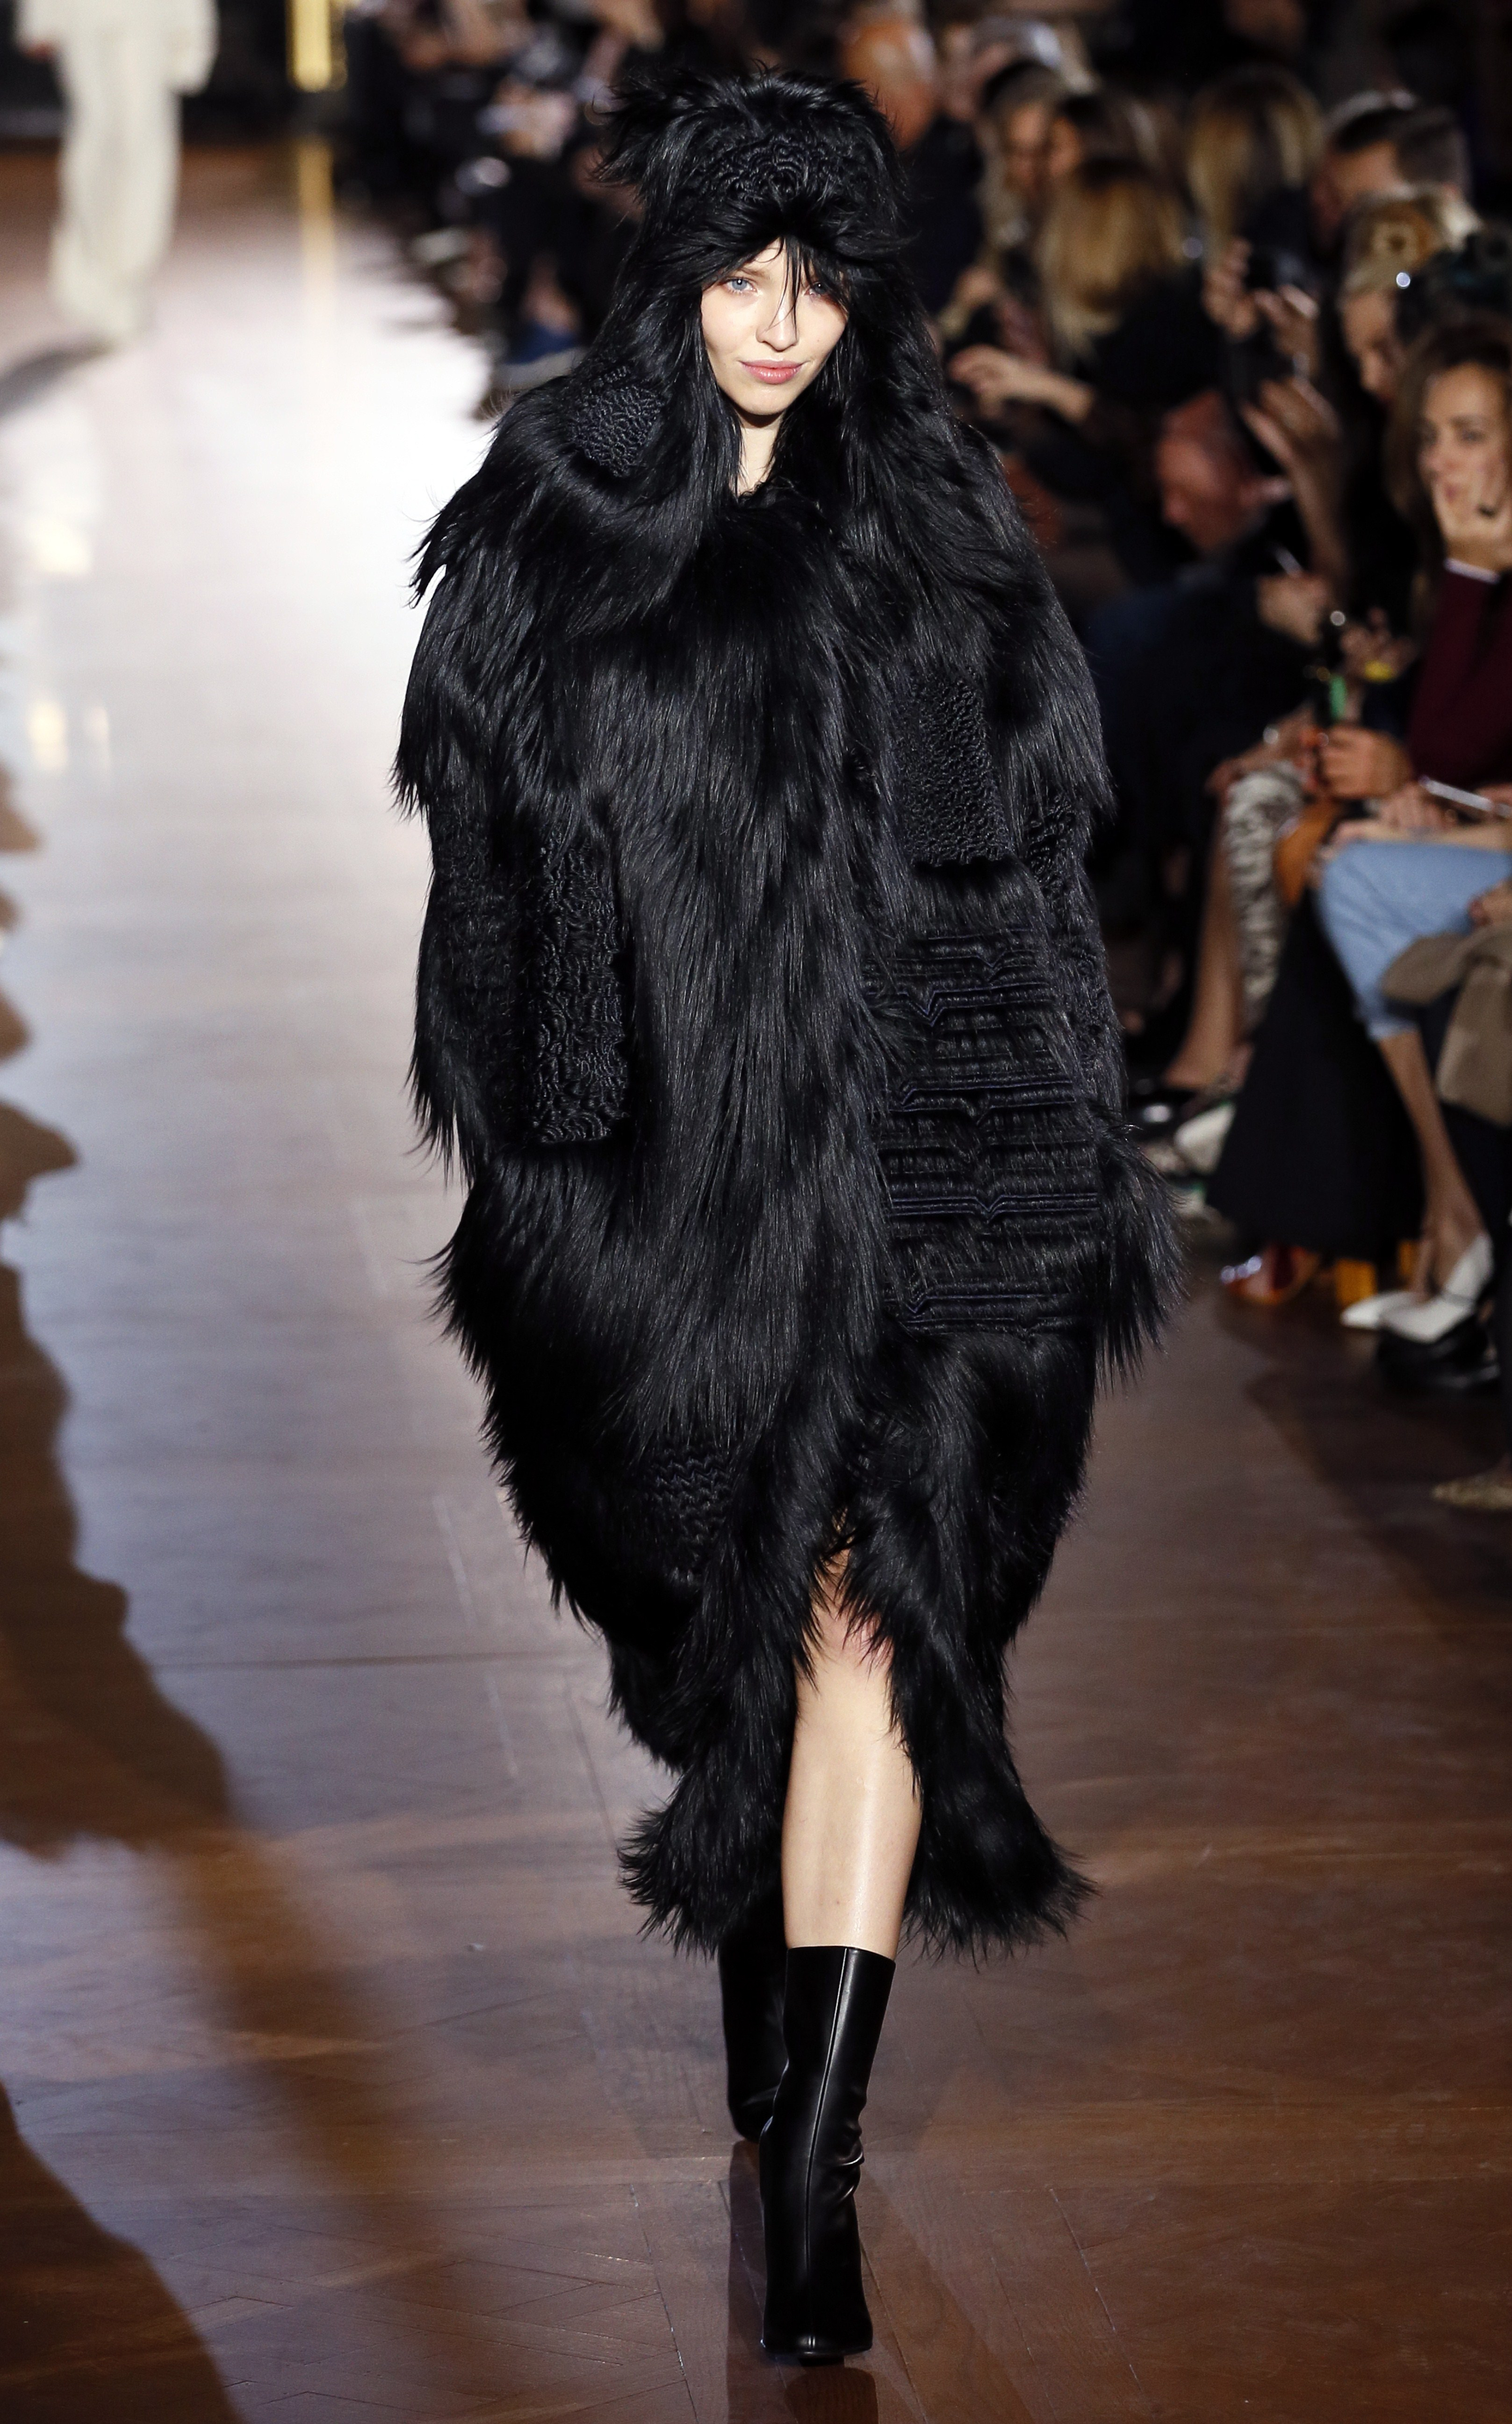 A model wears a faux fur coat during the Stella McCartney fall and winter 2015 presentation (Photo: Getty).